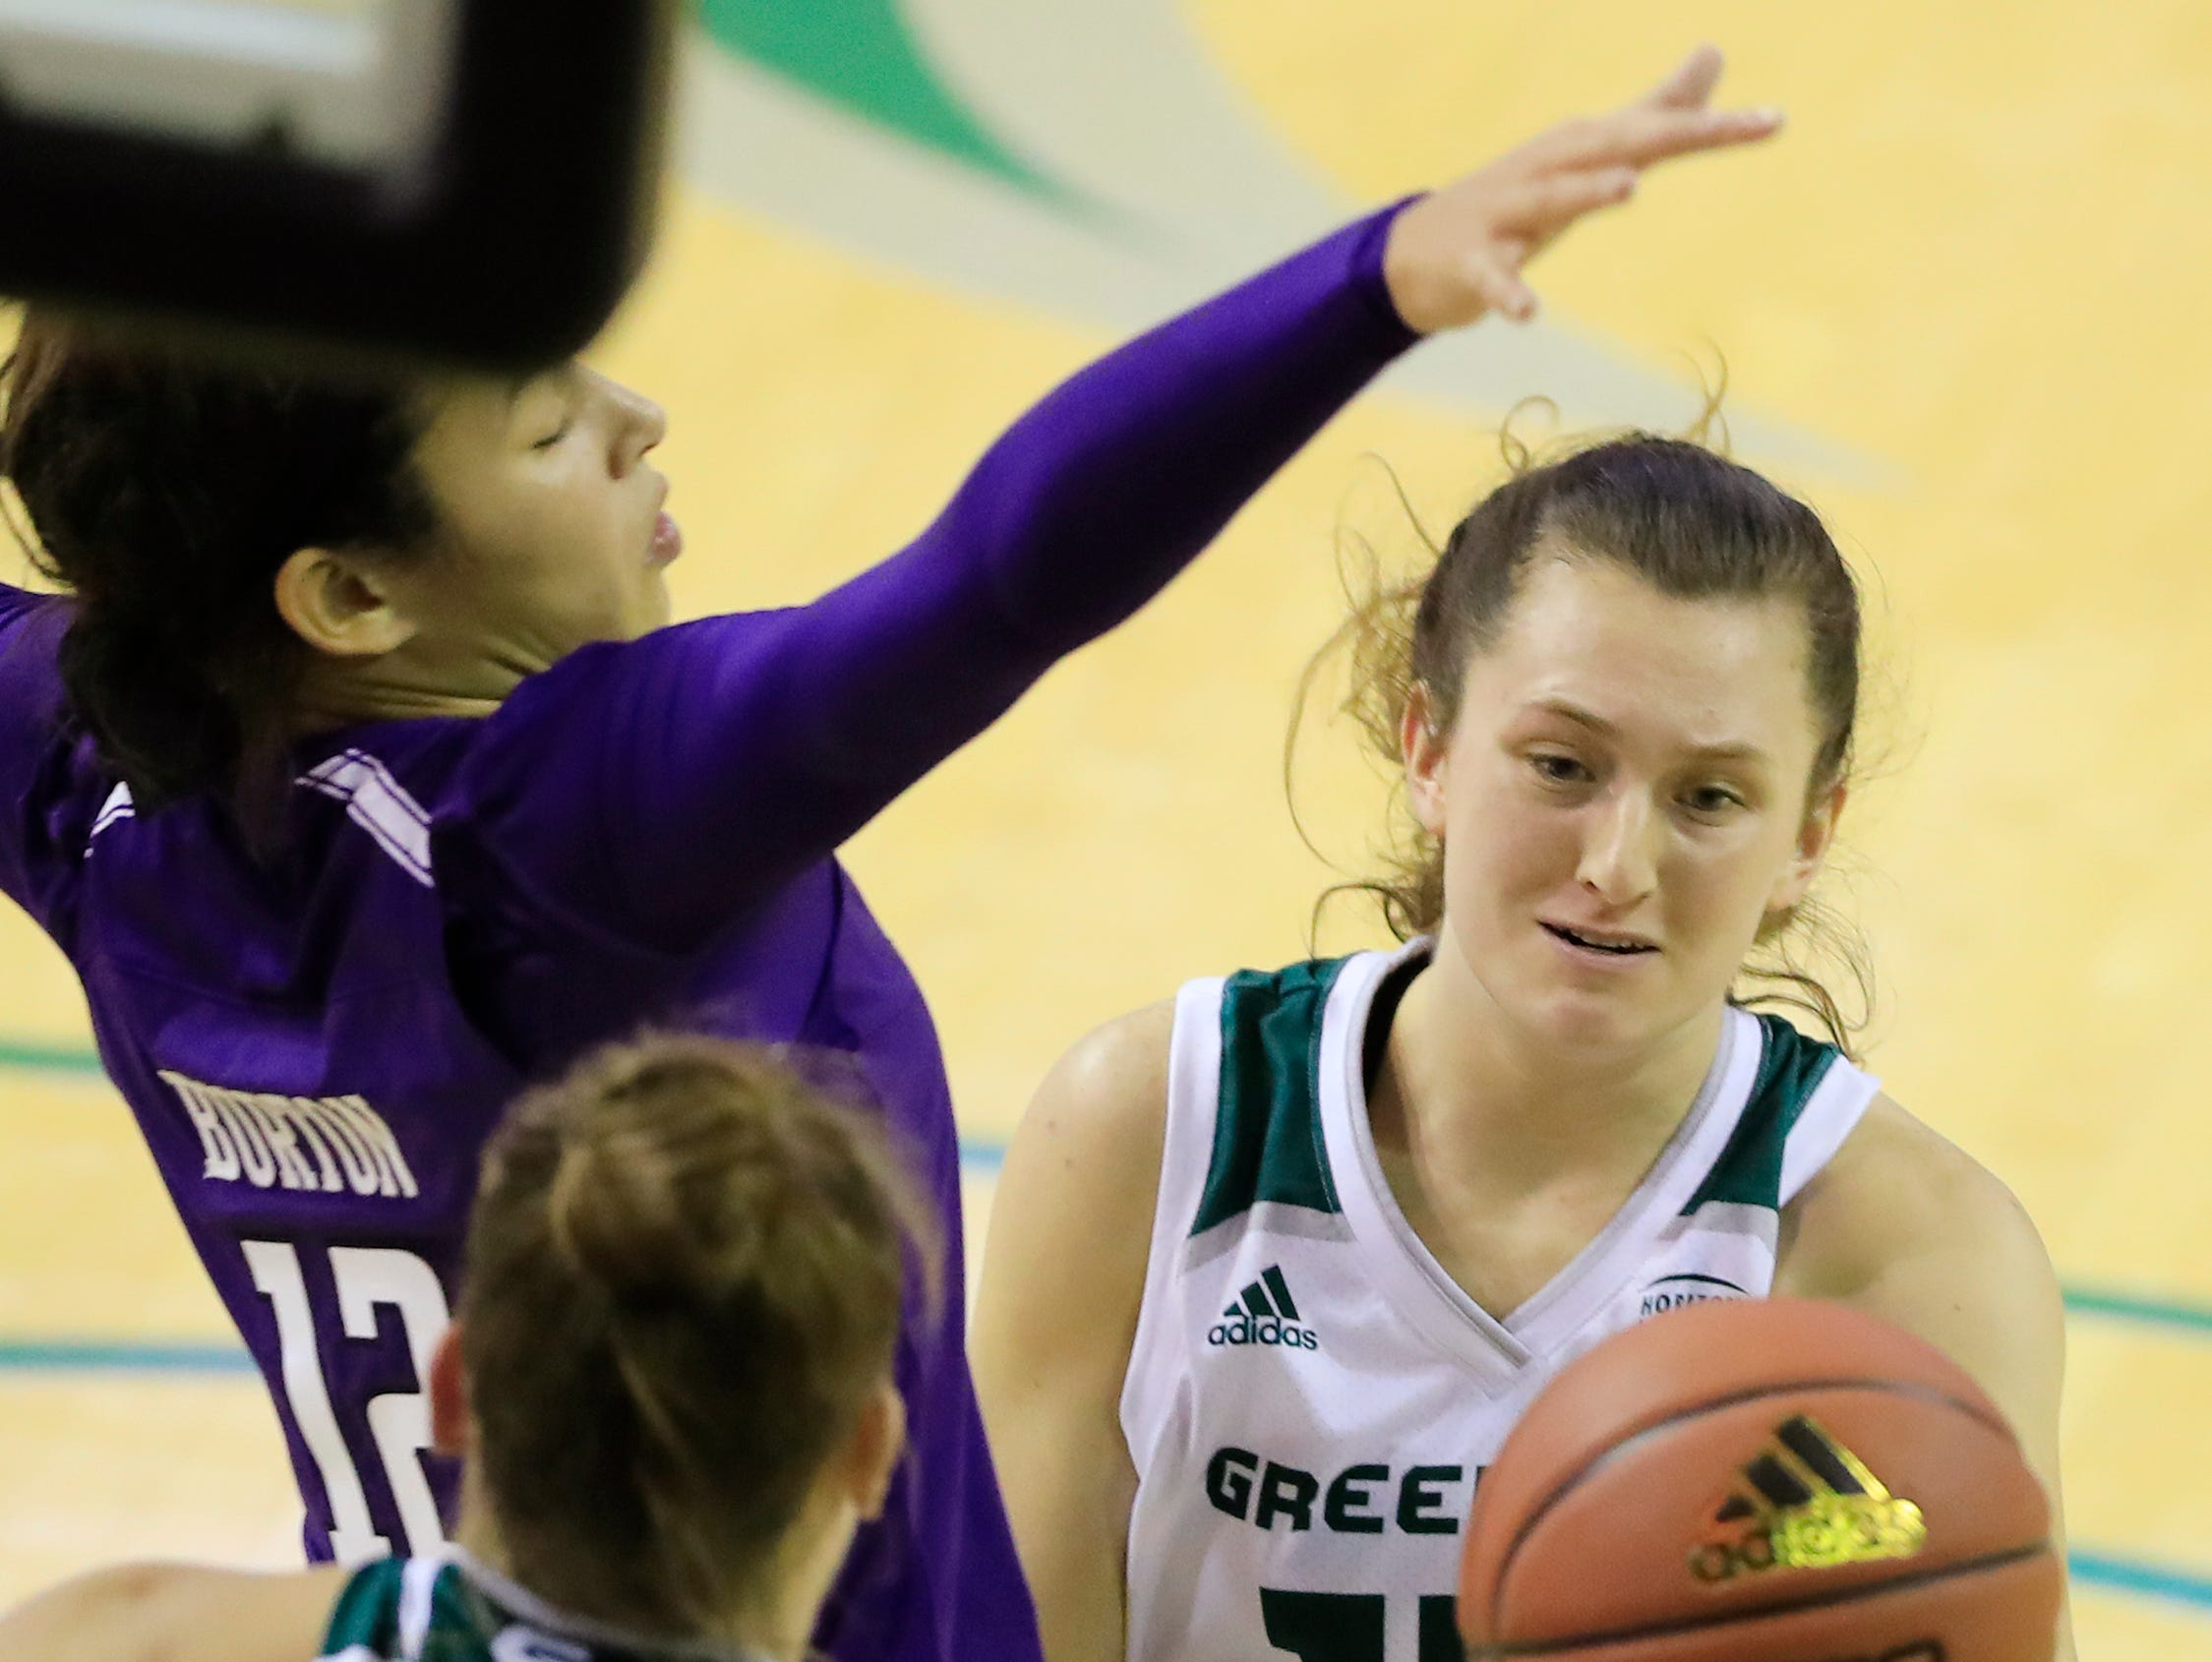 Green Bay Phoenix guard Meghan Pingel (14) fights for a rebound against the Northwestern Wildcats in a women's NCAA basketball game at the Kress Center on Tuesday, November 6, 2018 in Green Bay, Wis.